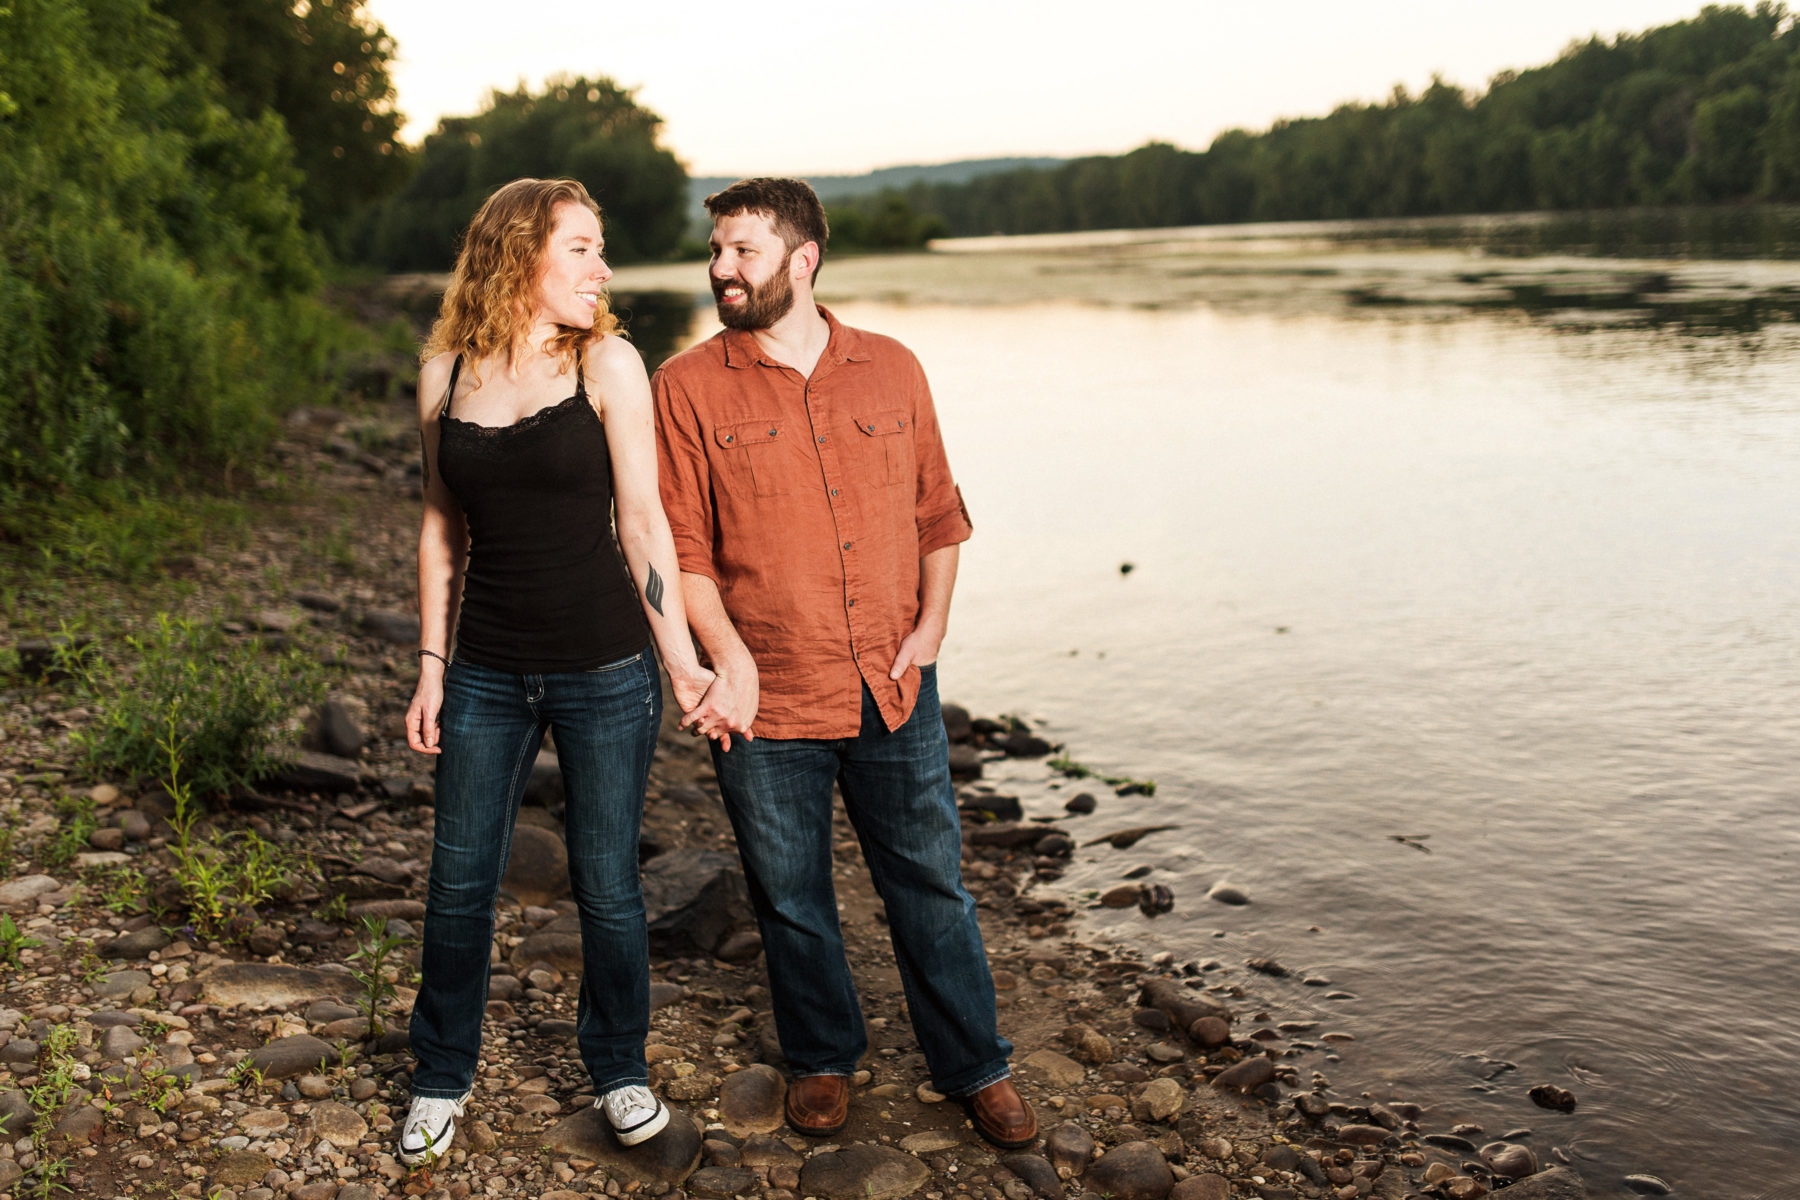 BUCKS_County_Washington_Crossing_Historic_Park_Heather_and_Tyler_0620160715_0006